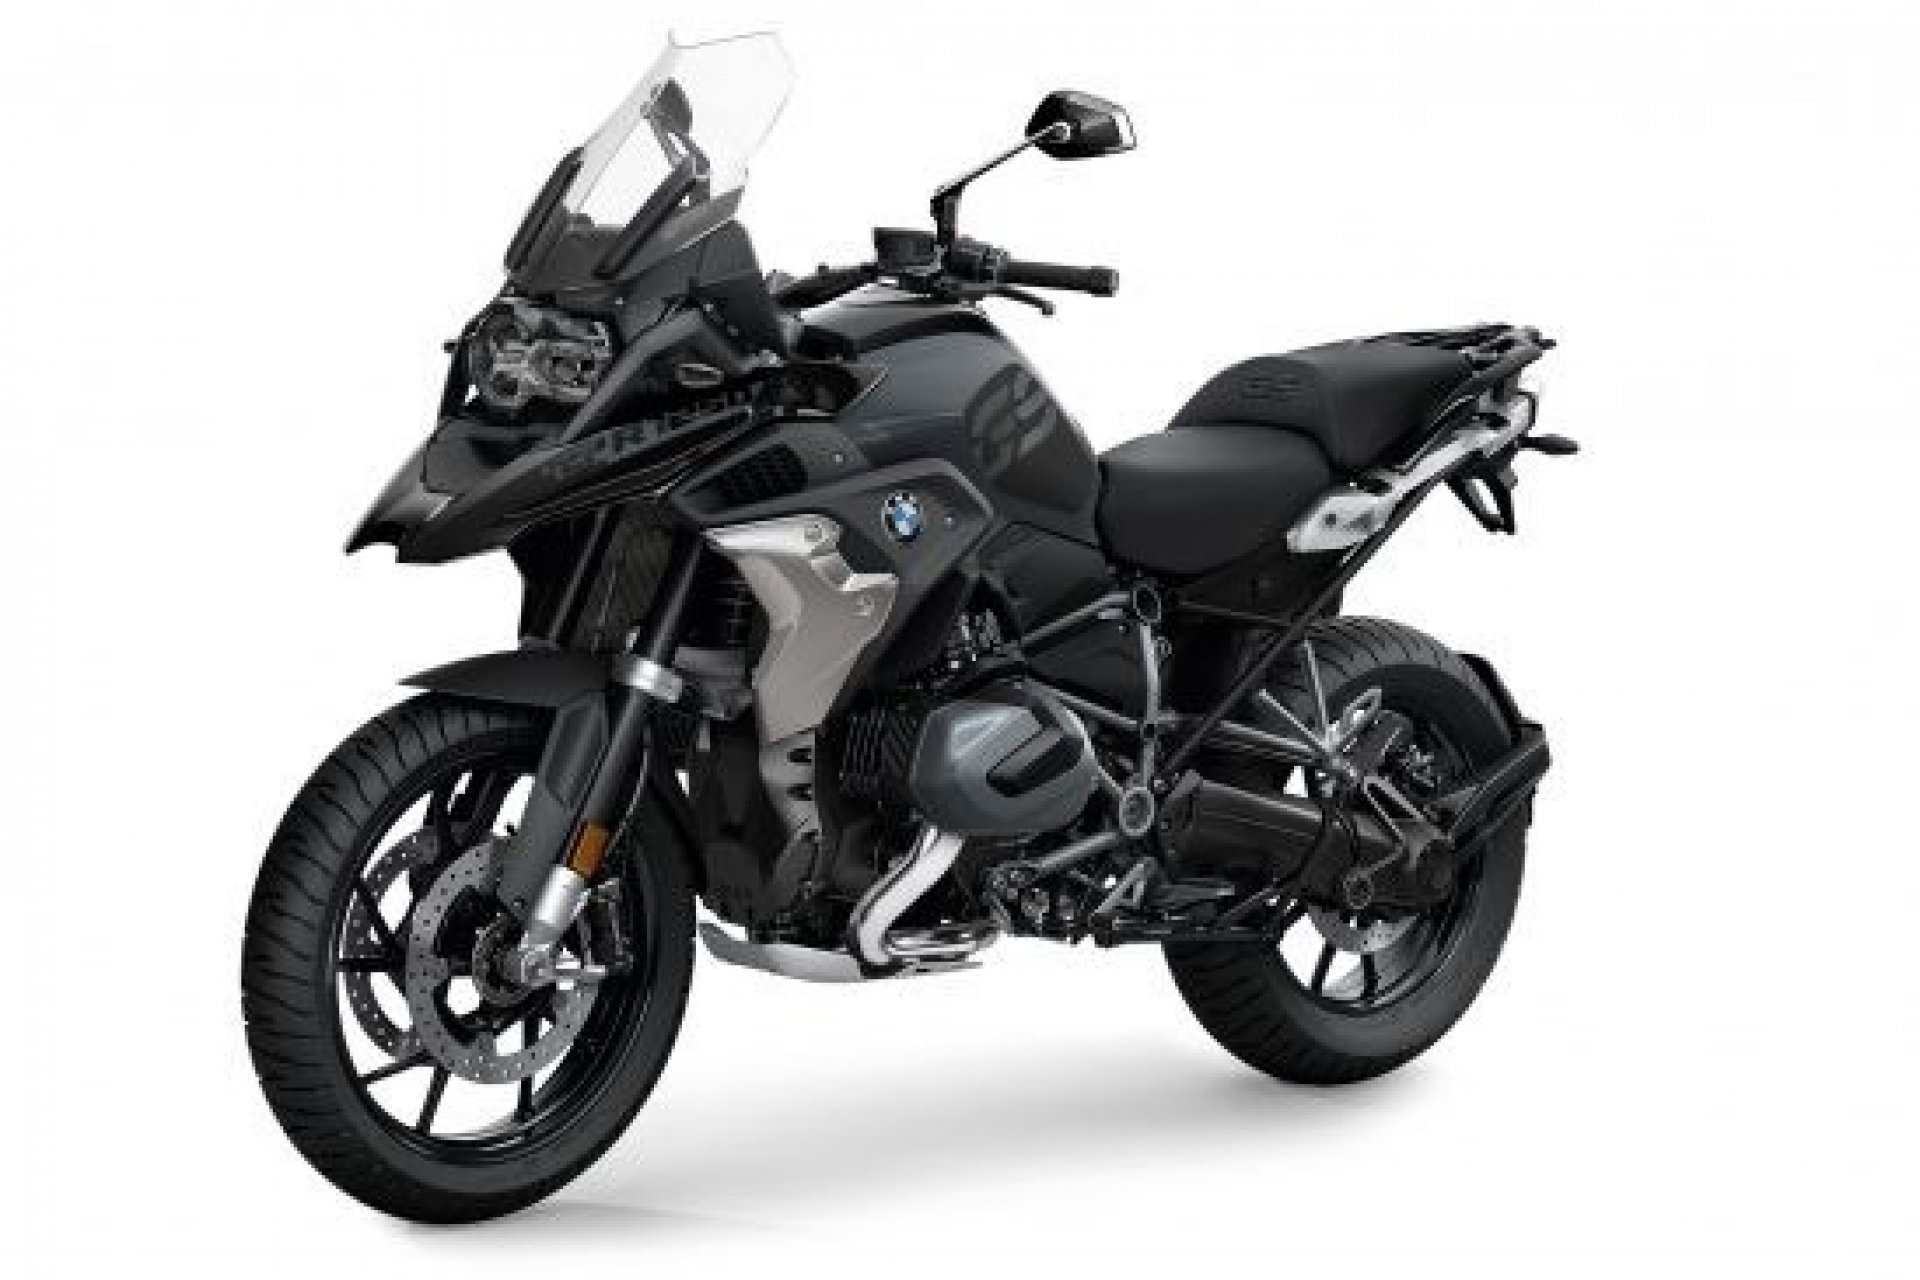 100120-2021-bmw-r1250gs-adventure-P90401150-549x388